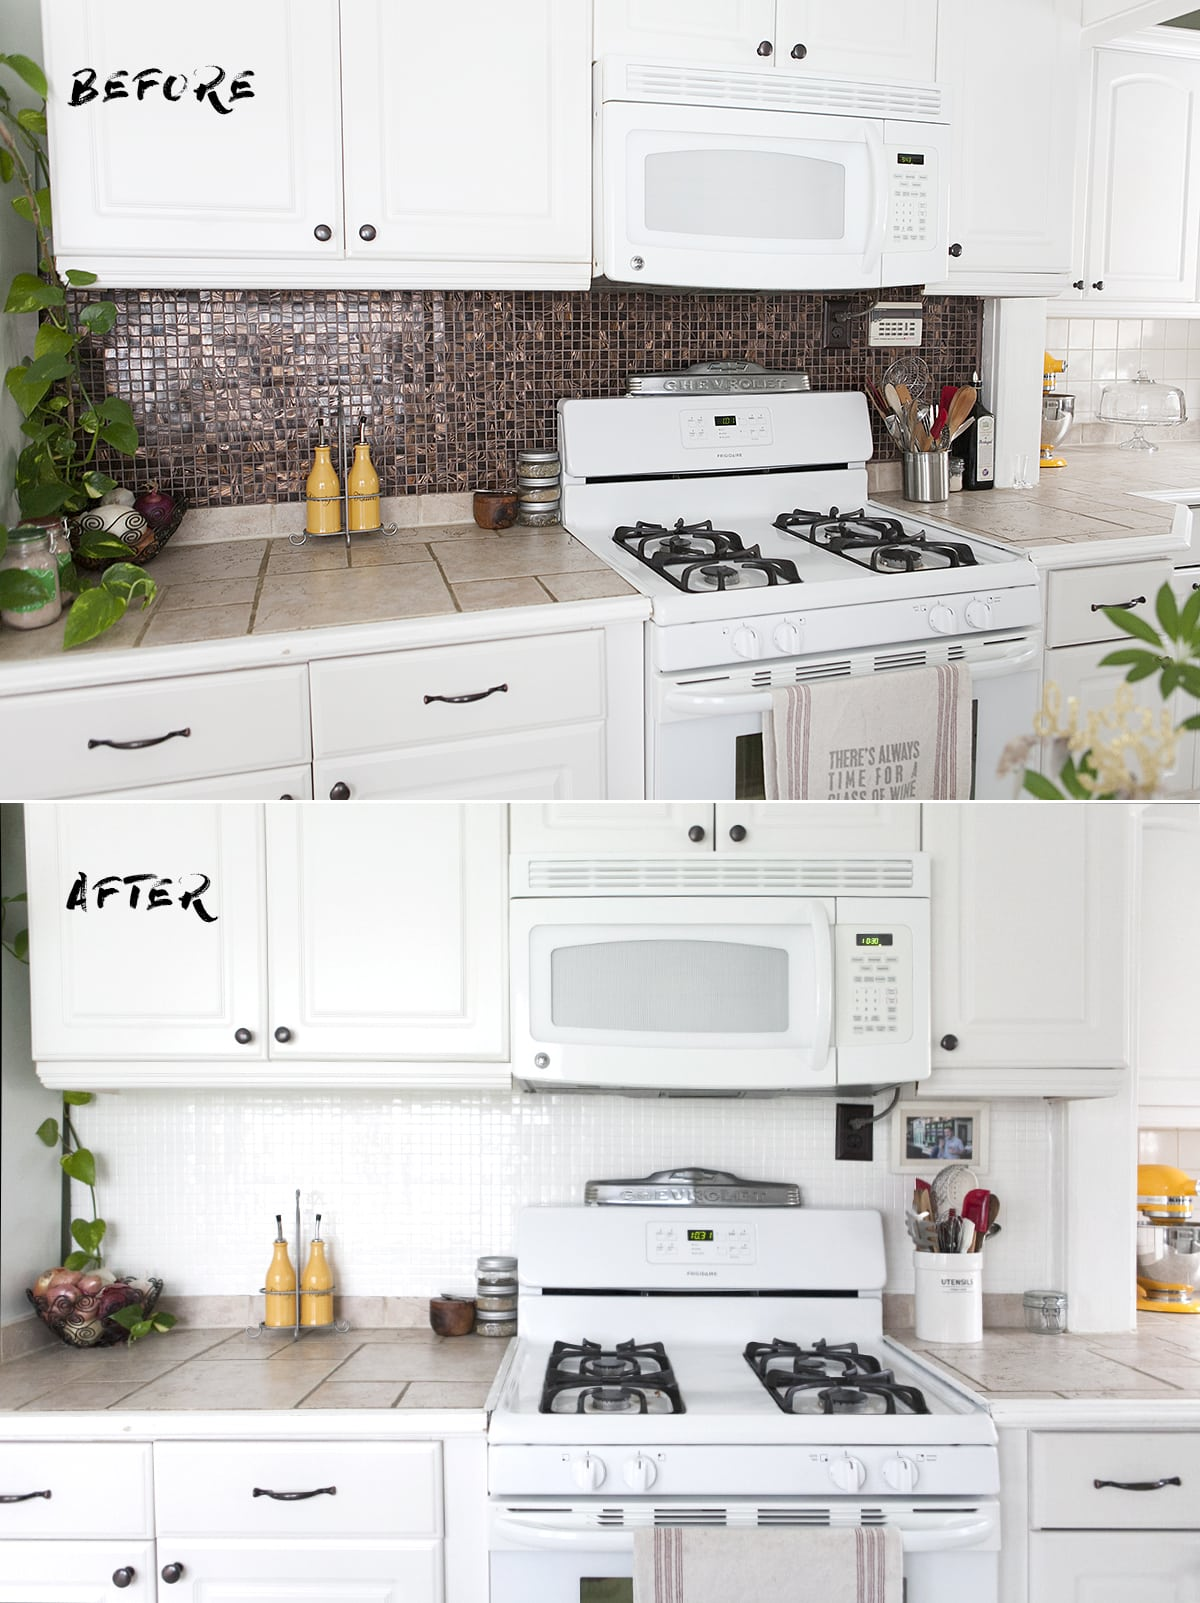 How to Paint a Tile Backsplash » Jessica Brigham Kitchen Tile Backsplashes on kitchen tile bathroom, kitchen tile ideas, kitchen coffered ceilings, kitchen tile wallpaper, kitchen tile borders, kitchen tile ceramic, kitchen tile carpet, kitchen closet shelving systems, kitchen tile colors, kitchen tile slate, kitchen tile floors, kitchen wall tiles, kitchen tile design, kitchen tile installation, kitchen tile glass, kitchen tile decals, kitchen tile paint, kitchen tile product, kitchen tile trim, kitchen tile murals,